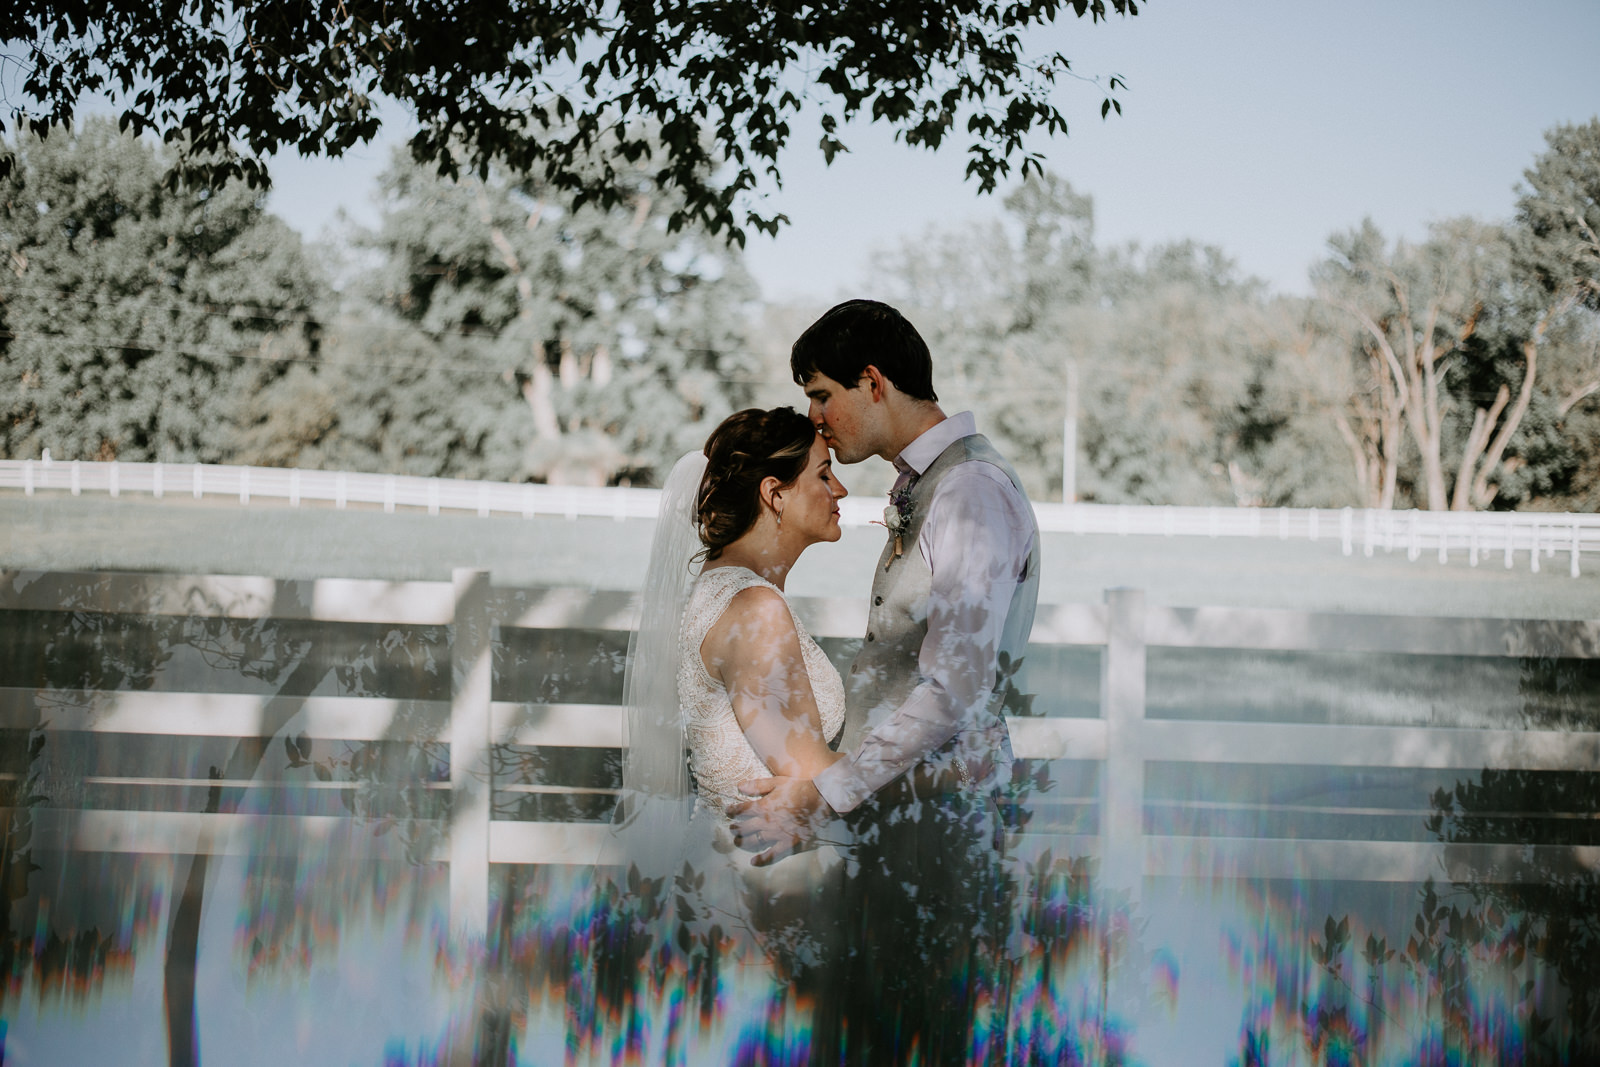 Groom kissing bride's head with prism reflection of trees